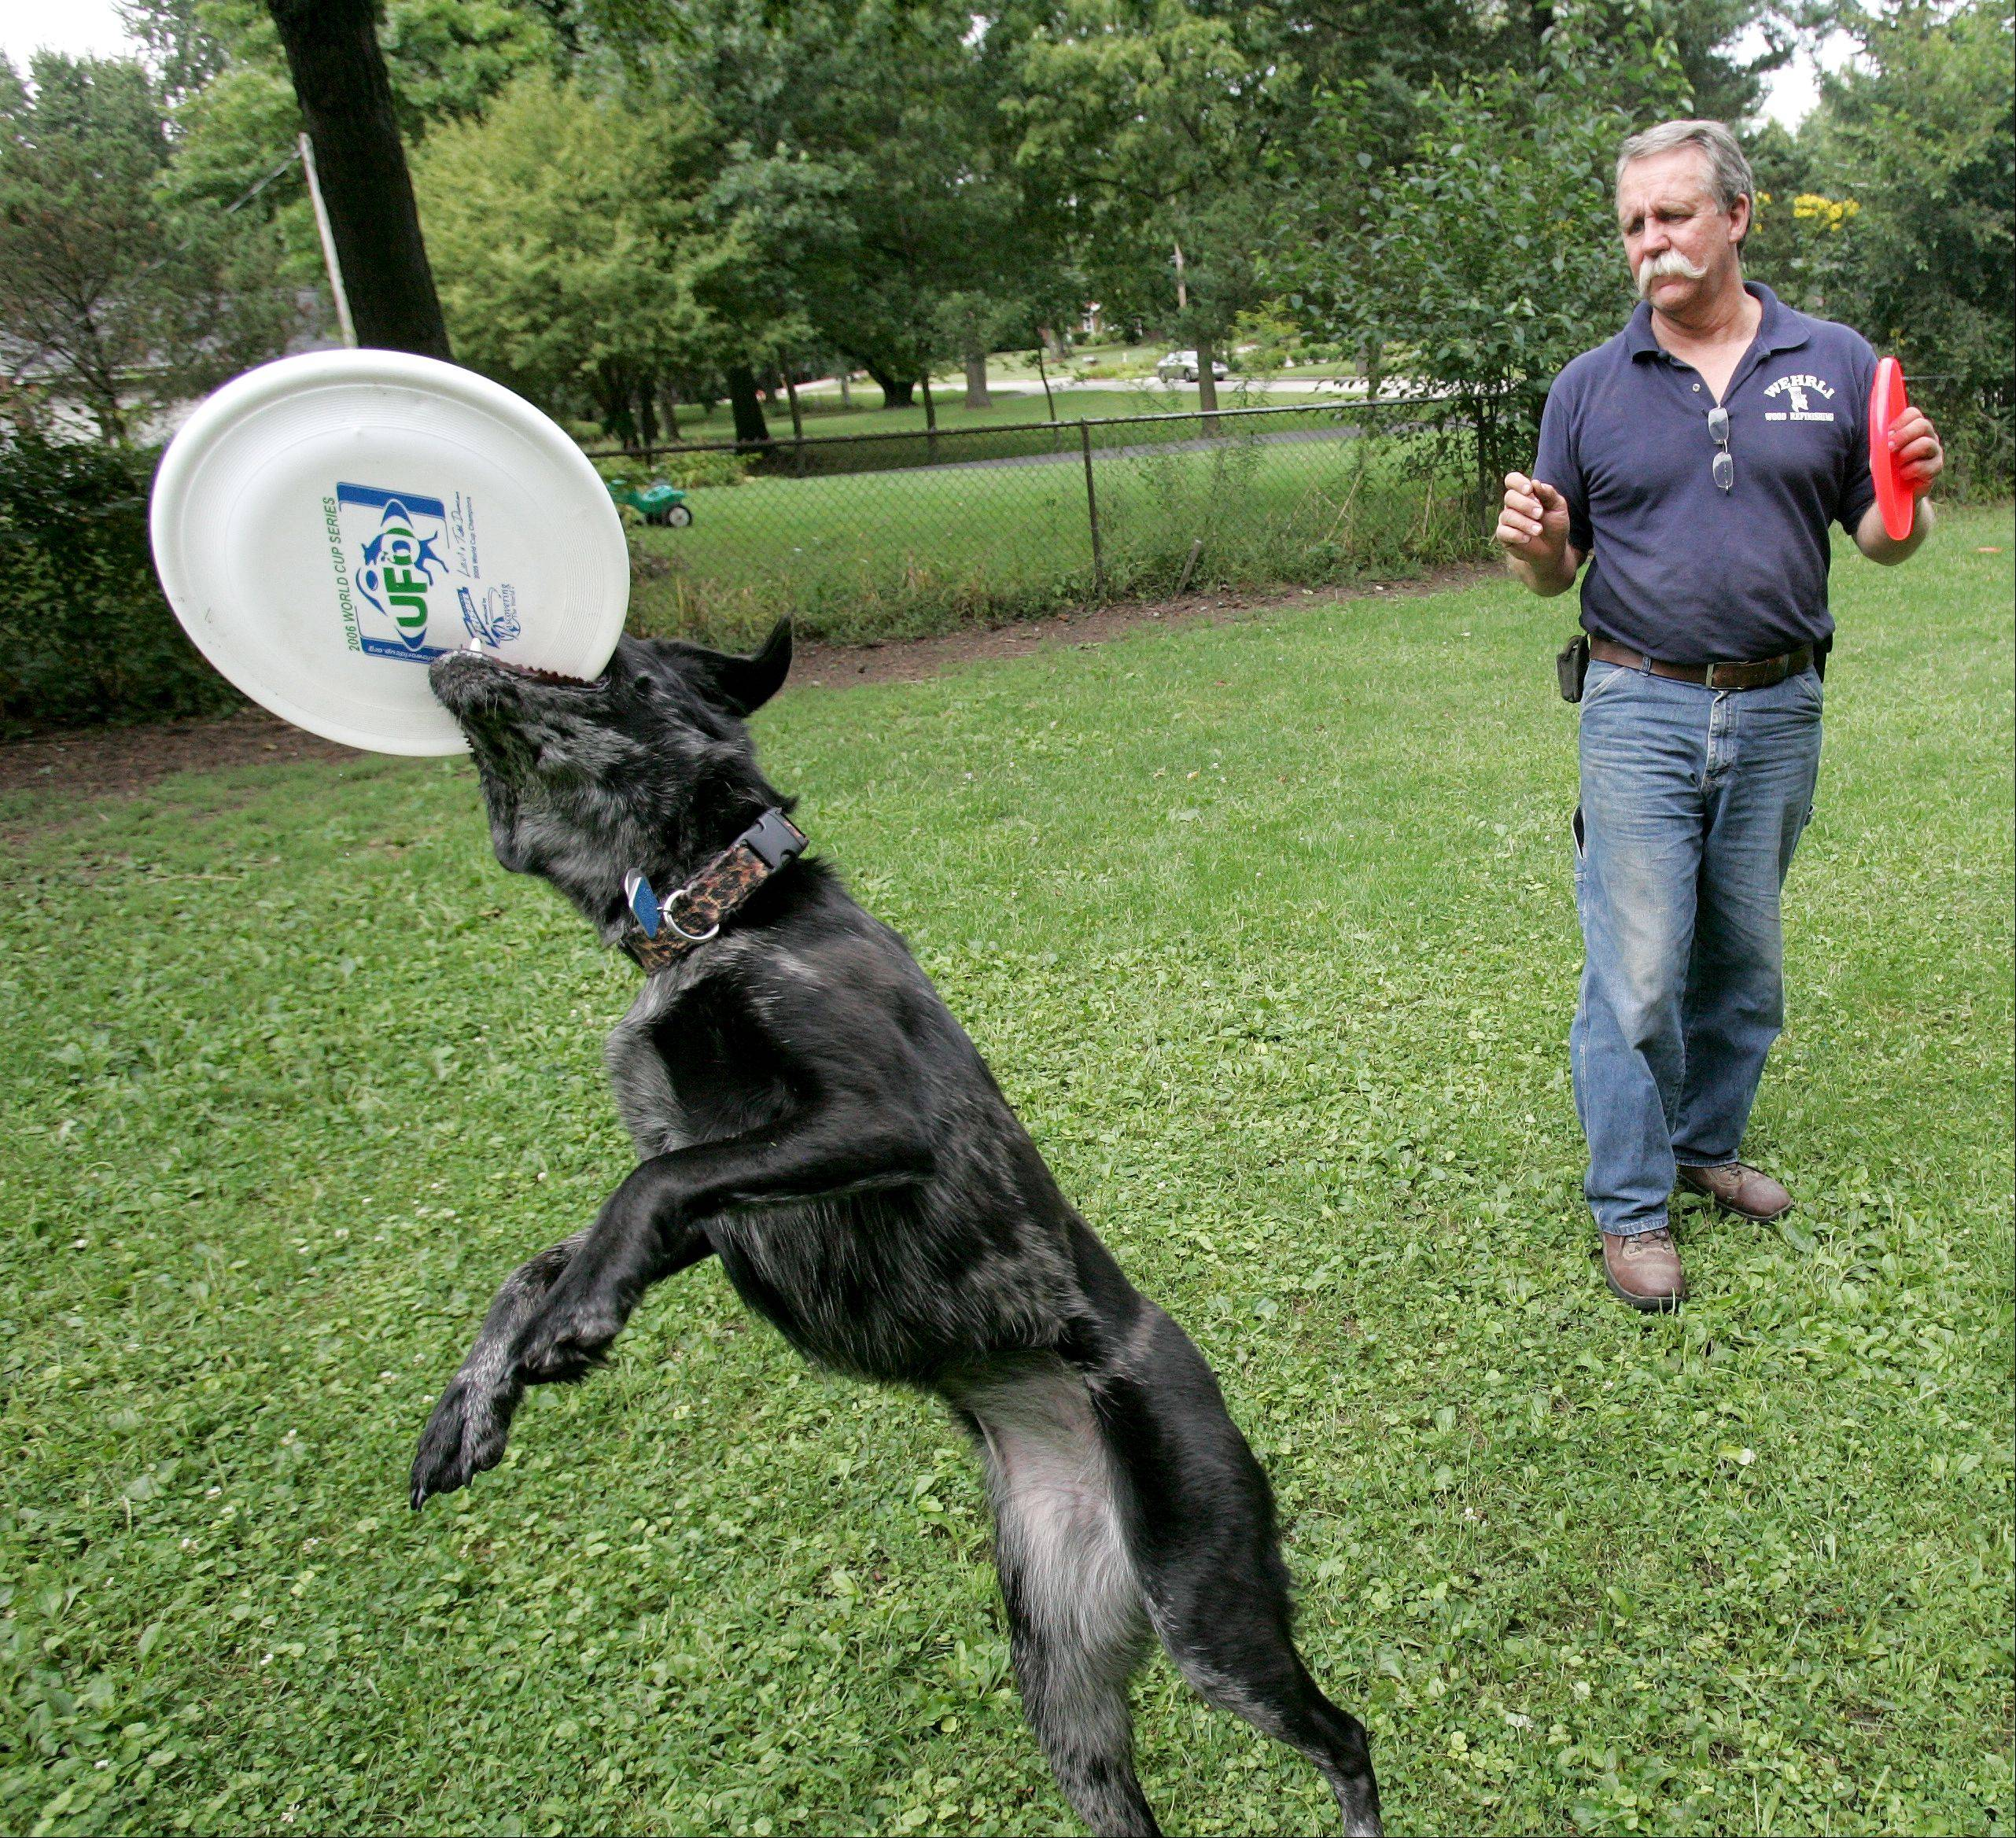 The Ashley Whippet Invitational World Championship Qualifier beginning at 9:30 a.m. Sunday, Sept. 1, and the Windy City K9 Classic beginning at 9:30 a.m. Saturday, Aug. 31, are Last Fling events open to man, woman and dog.